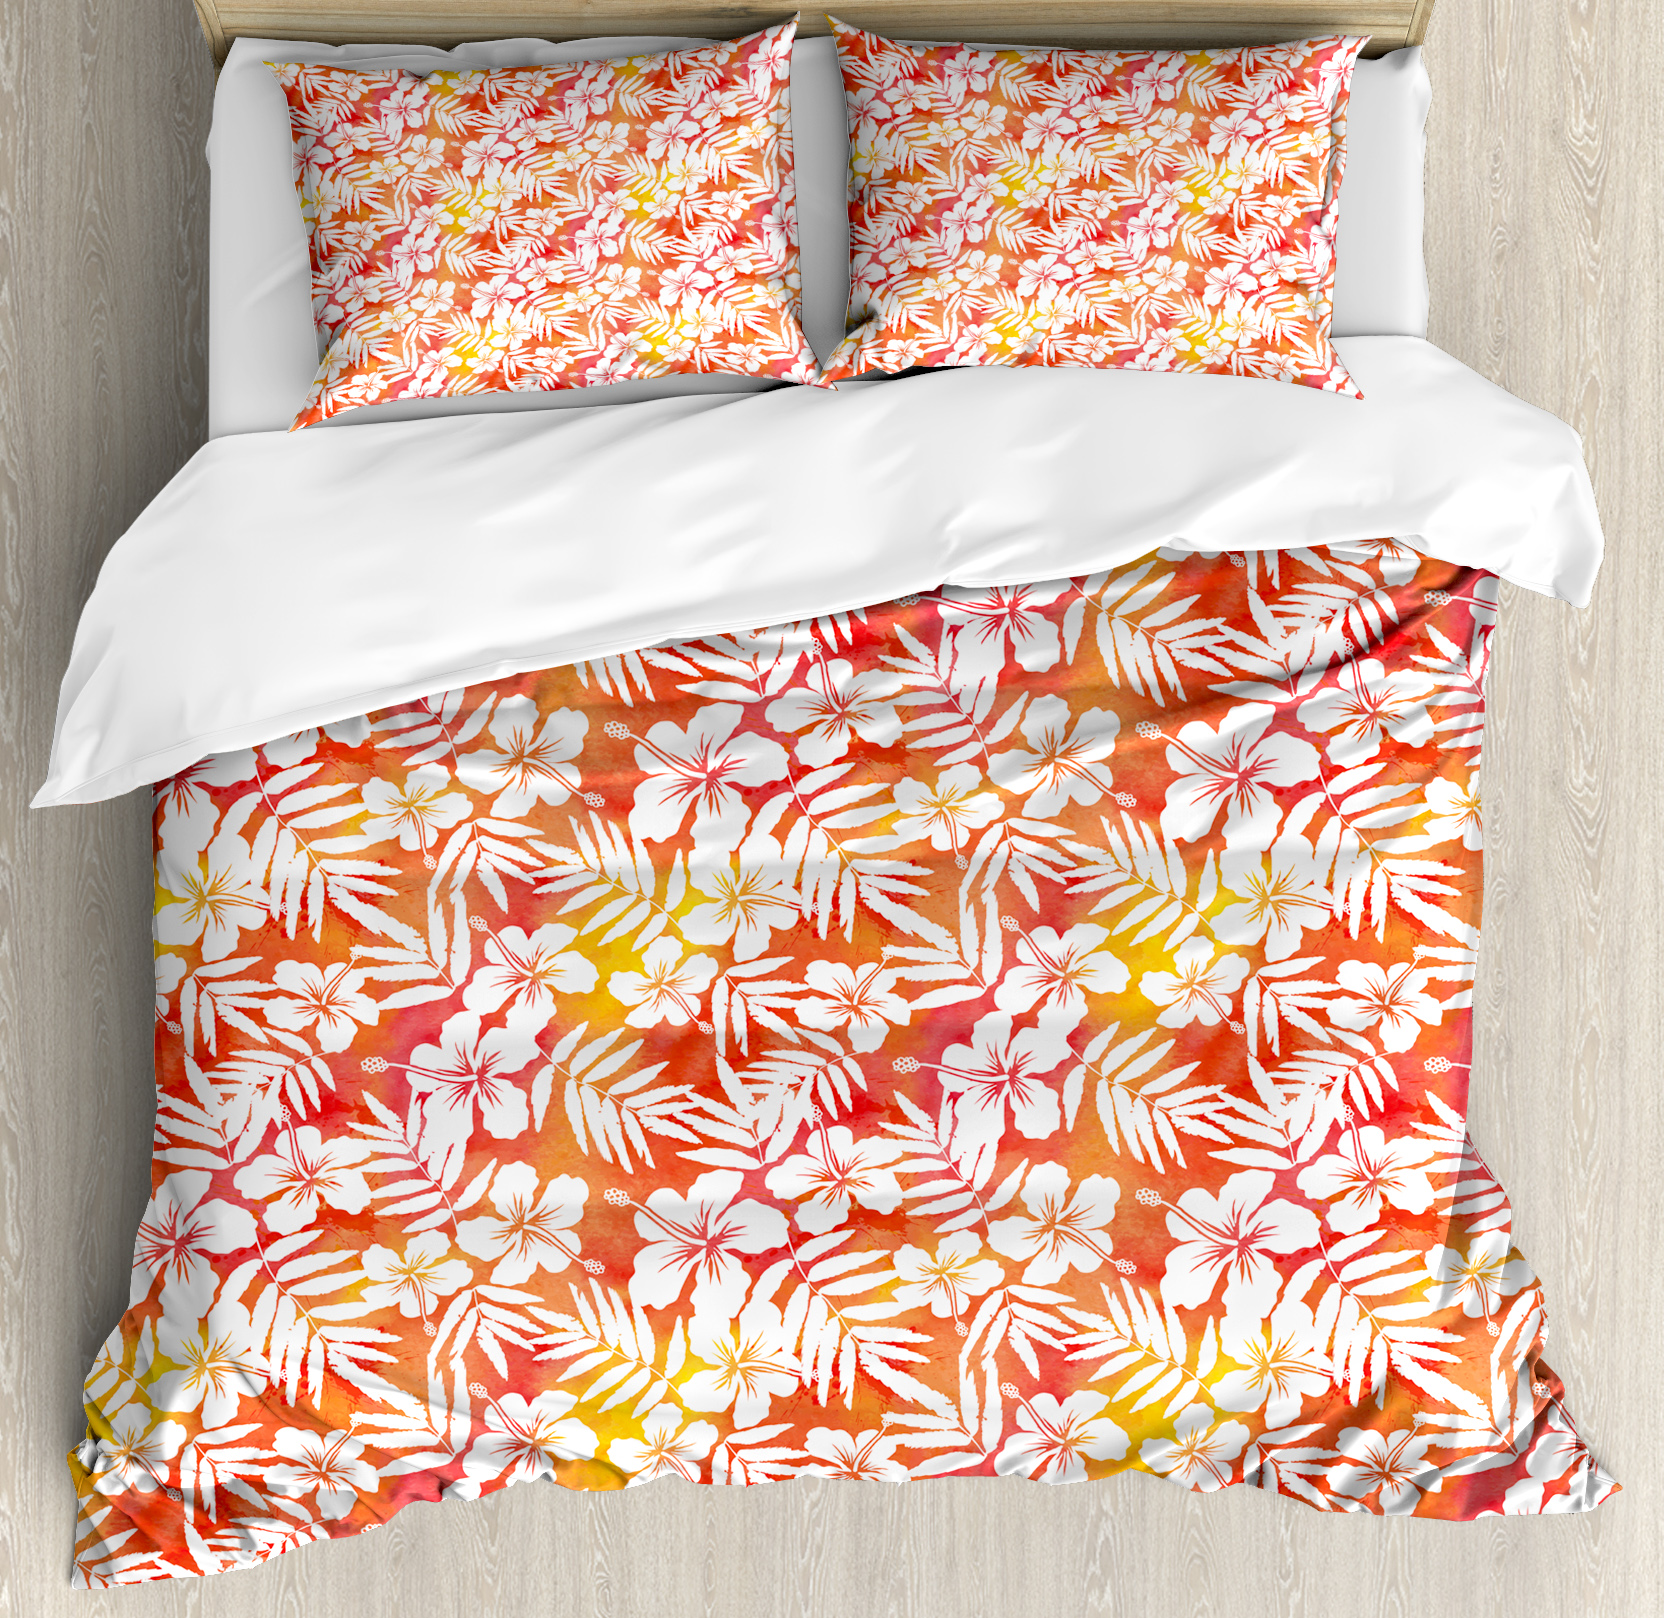 Orange Queen Size Duvet Cover Set, Fantasy Watercolor Backdrop with White Hibiscus Blossoms Leaves Aloha Jungle, Decorative 3 Piece Bedding Set with 2 Pillow Shams, Yellow Coral White, by Ambesonne